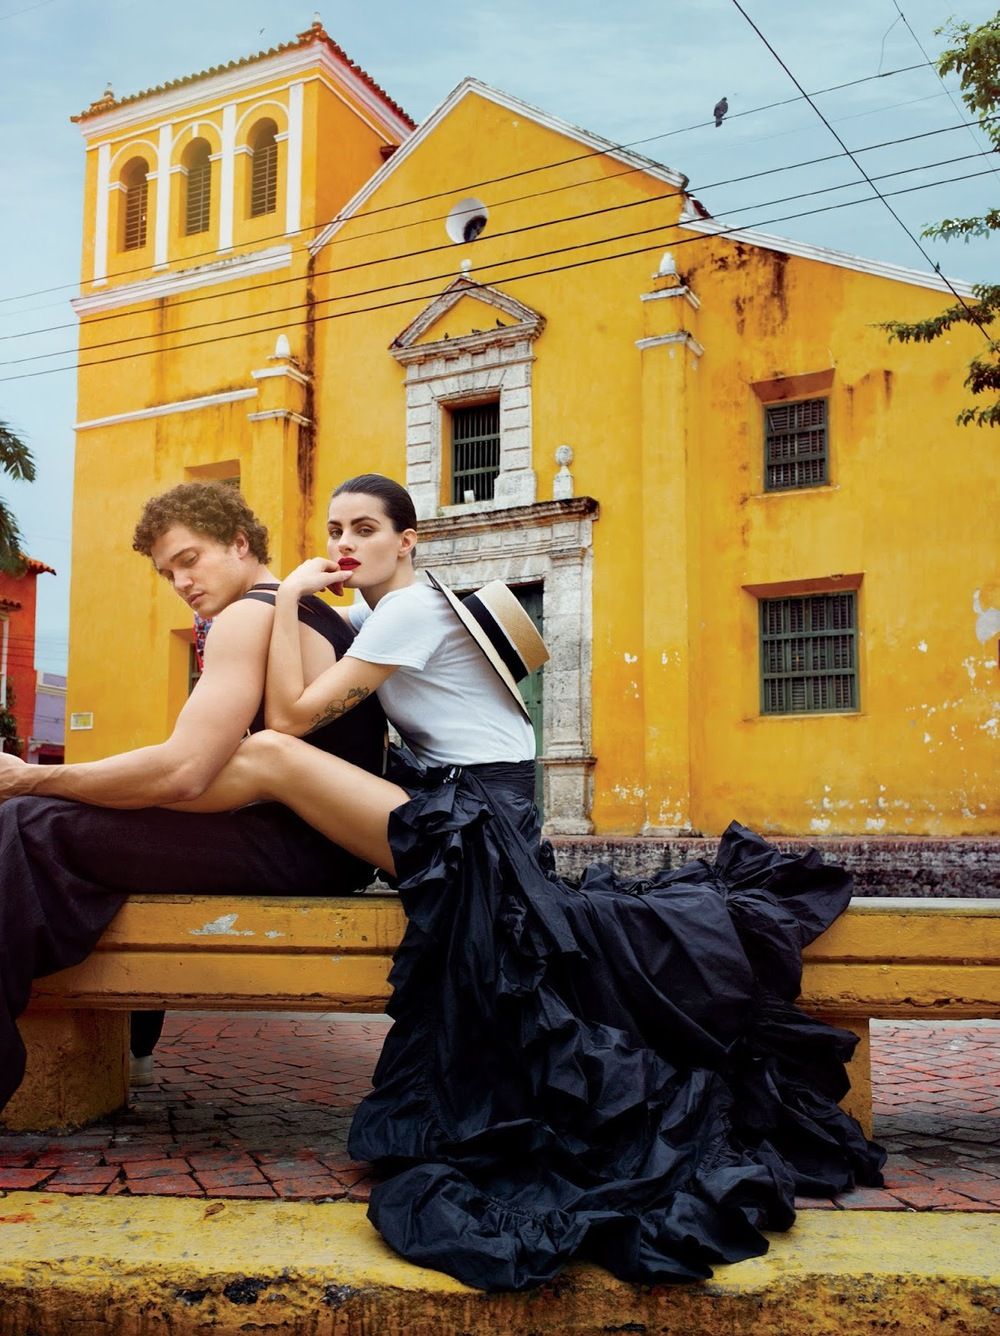 the romantics: isabeli fontana and karl glusman by cedric buchet for us glamour february 2016